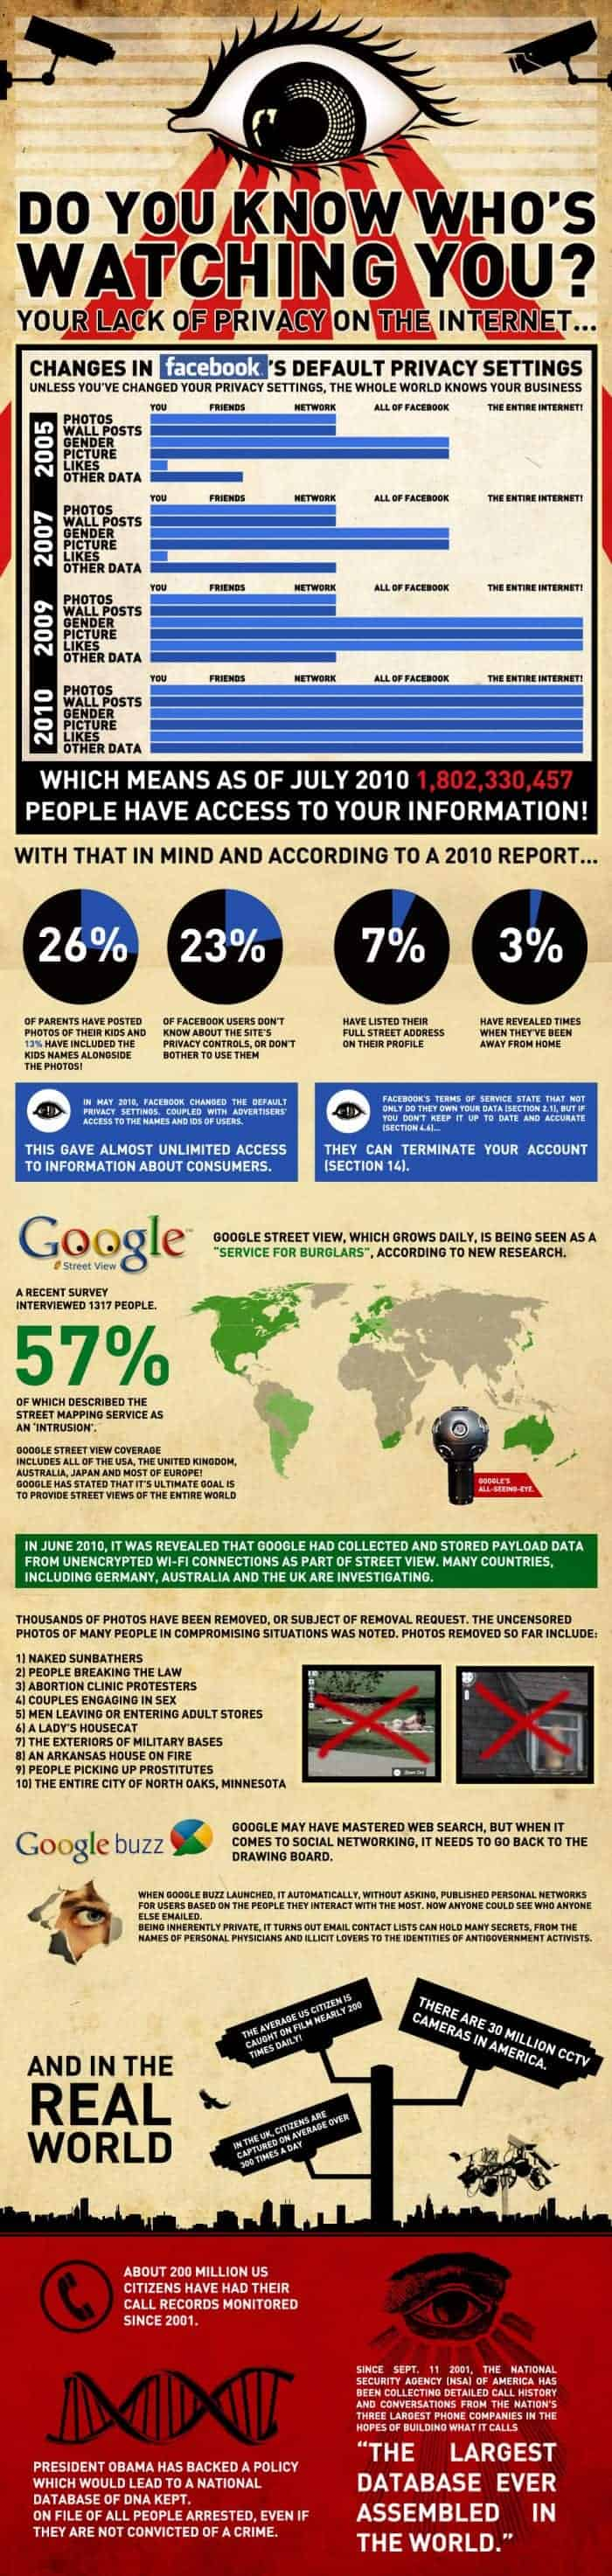 facts and figures about privacy on the internet